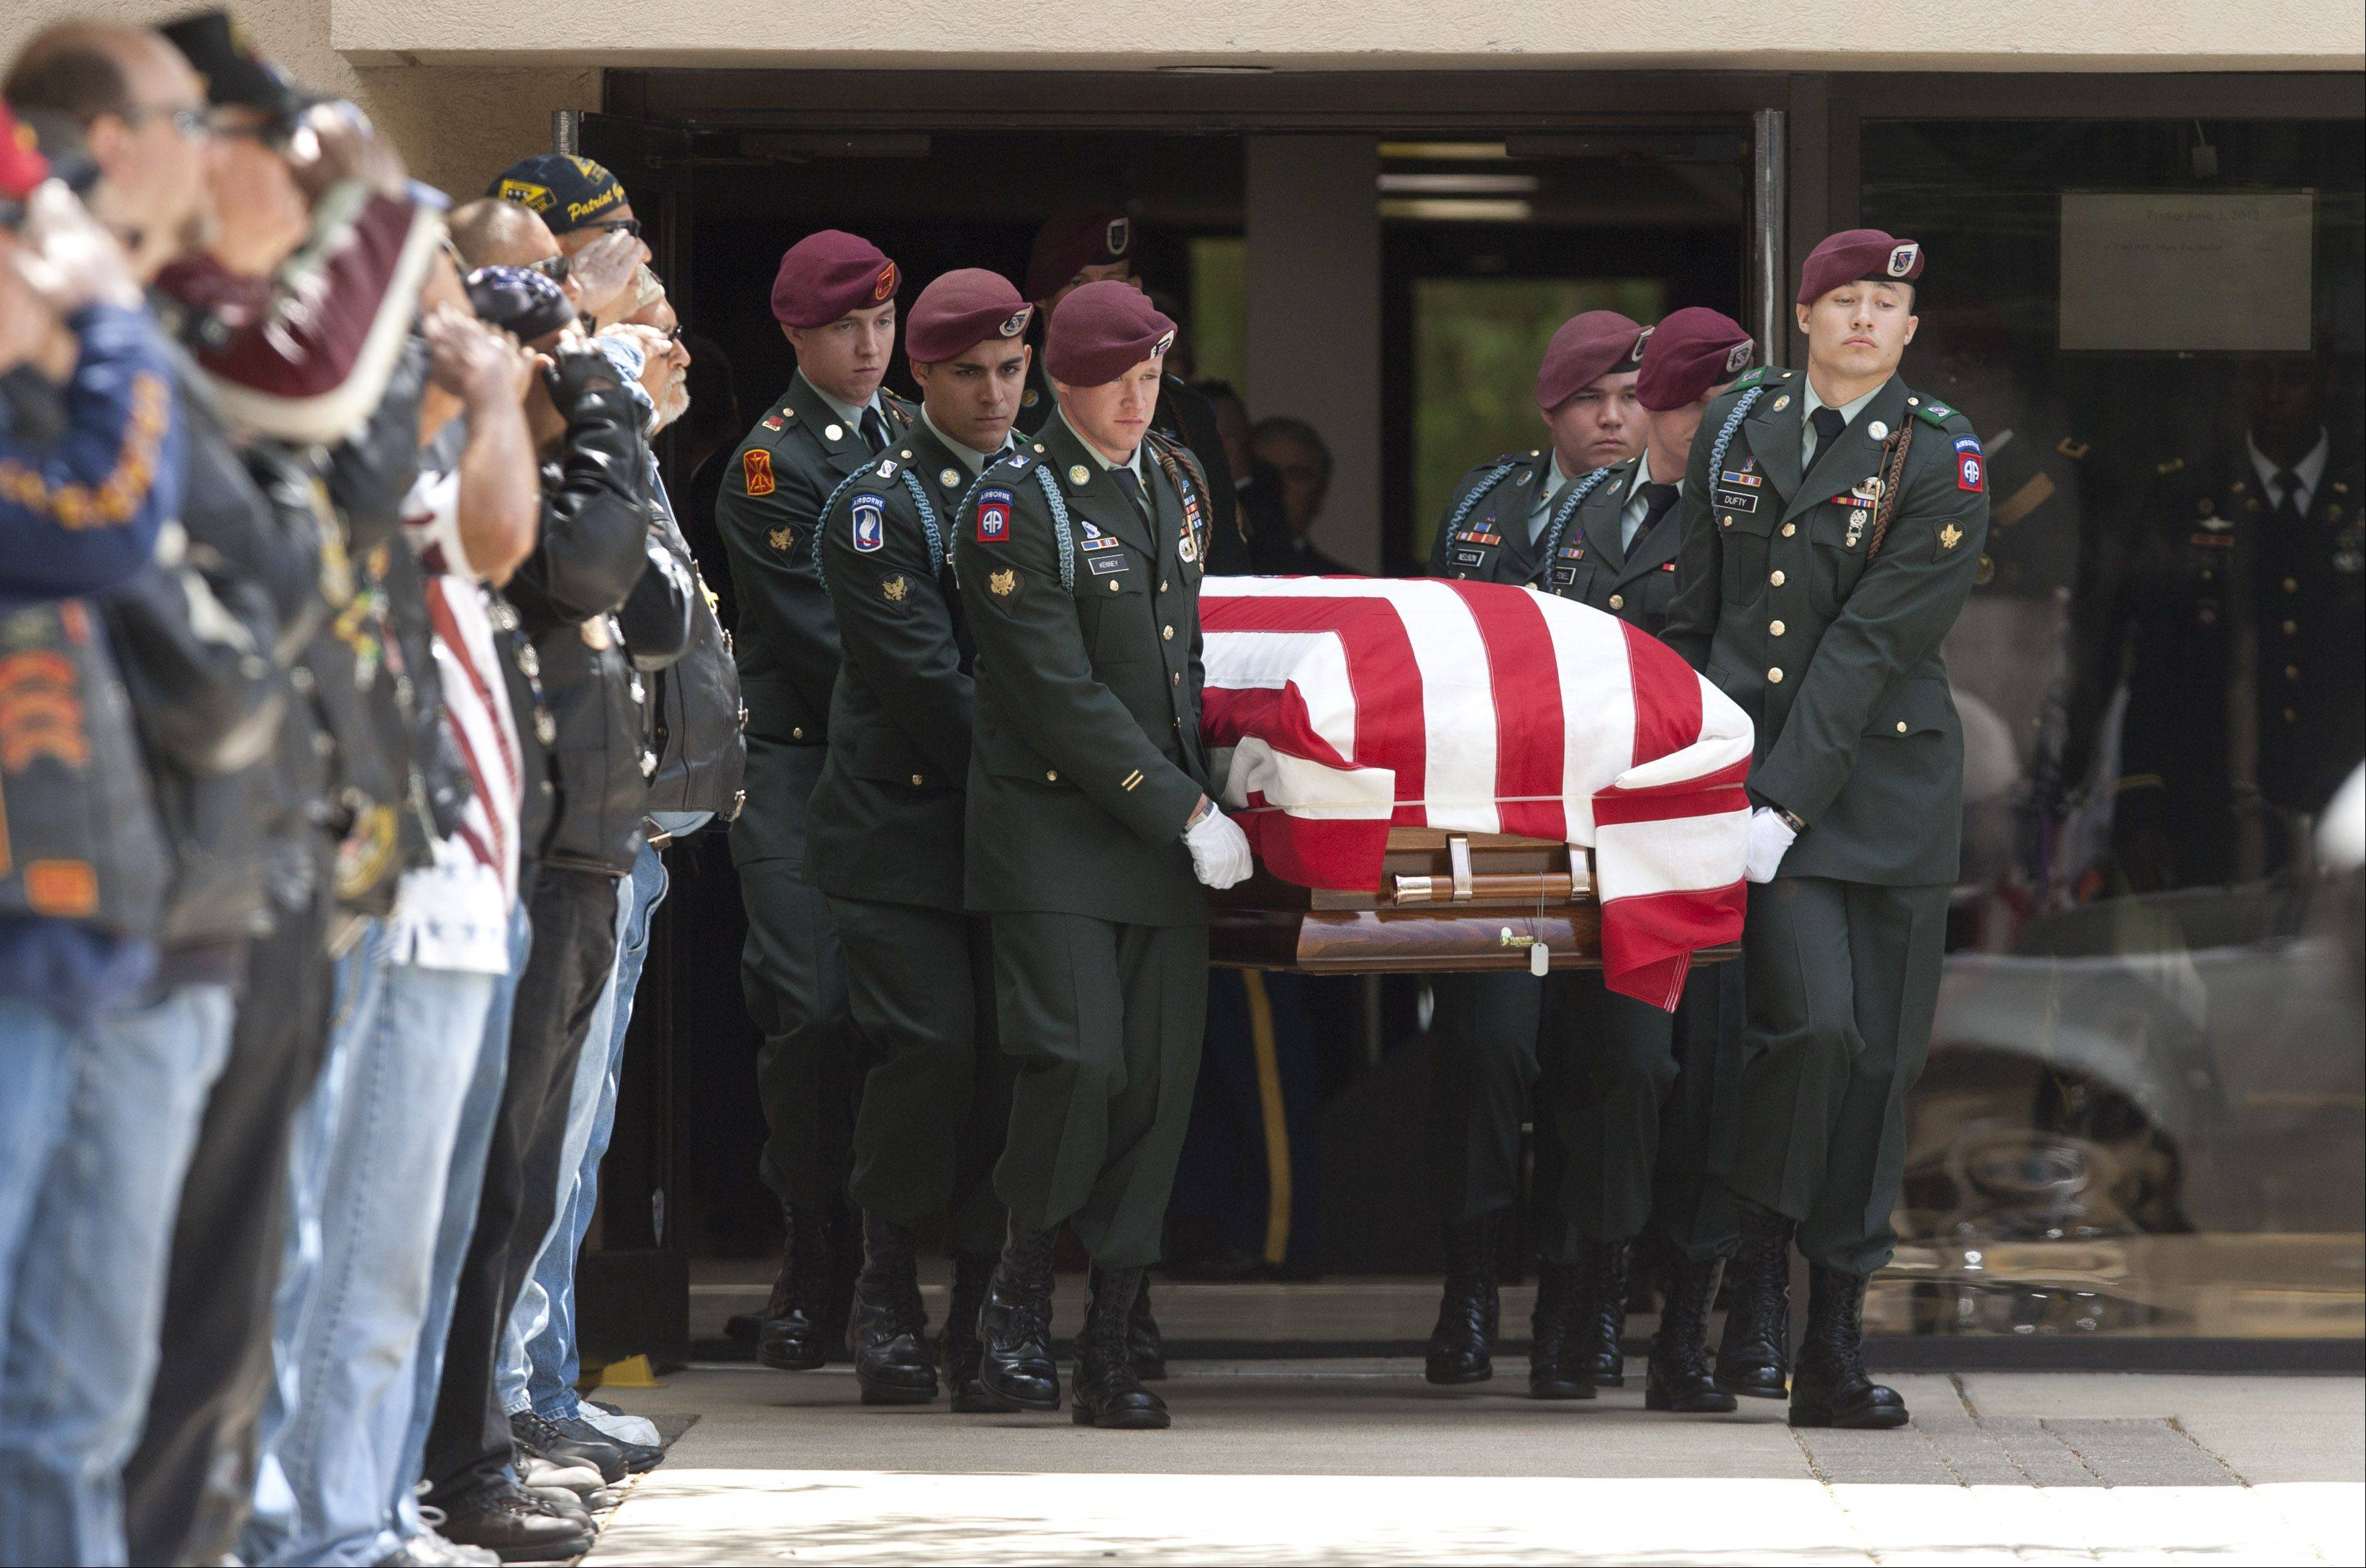 Wheaton soldier memorialized for unwavering sense of duty